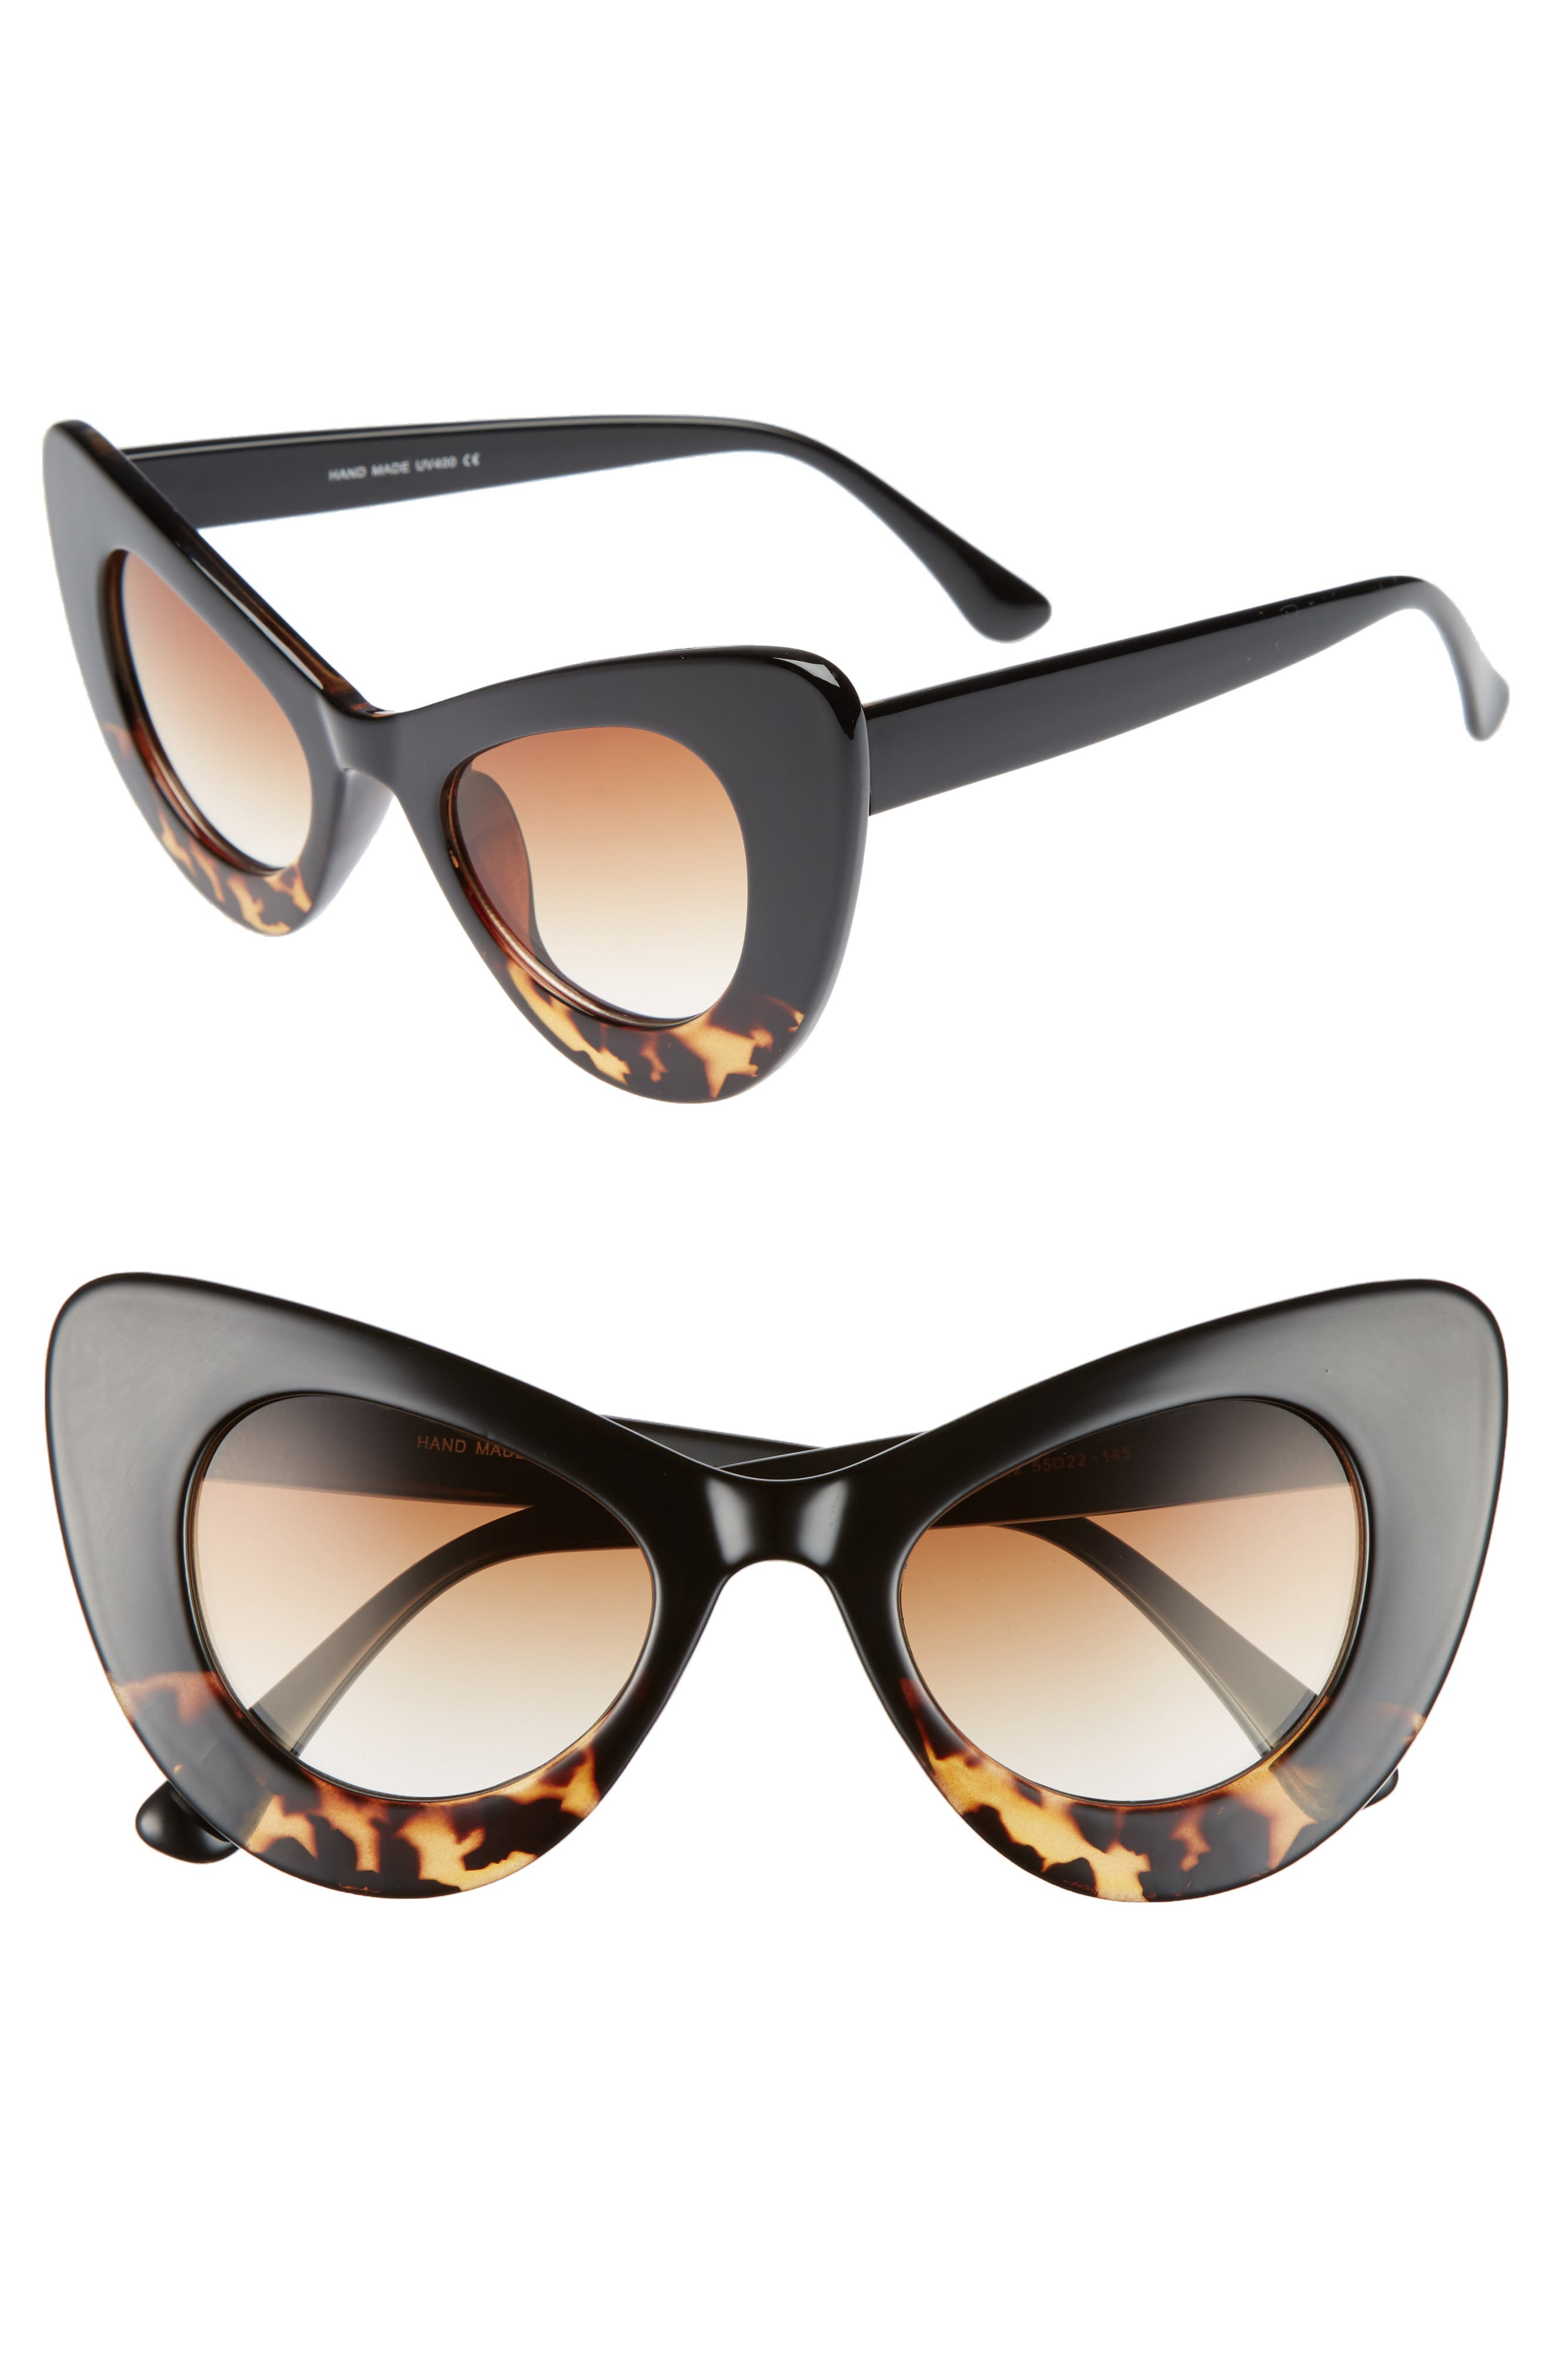 La Double 7 55mm Exaggerated Cat Eye Sunglasses